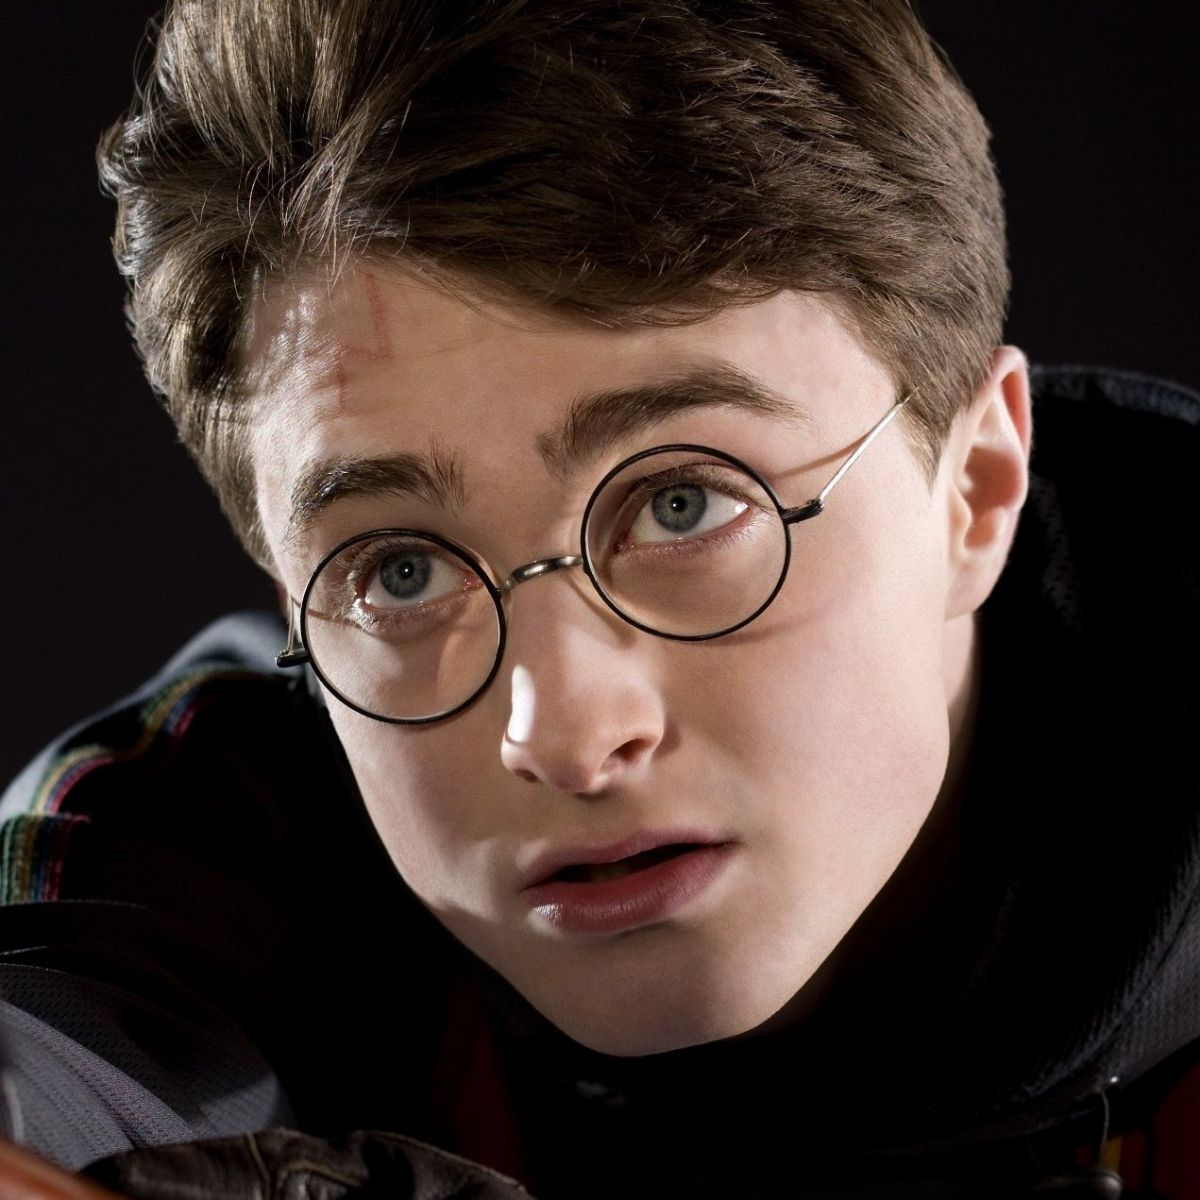 Harry Potter Images Harry Potter HD Wallpaper And